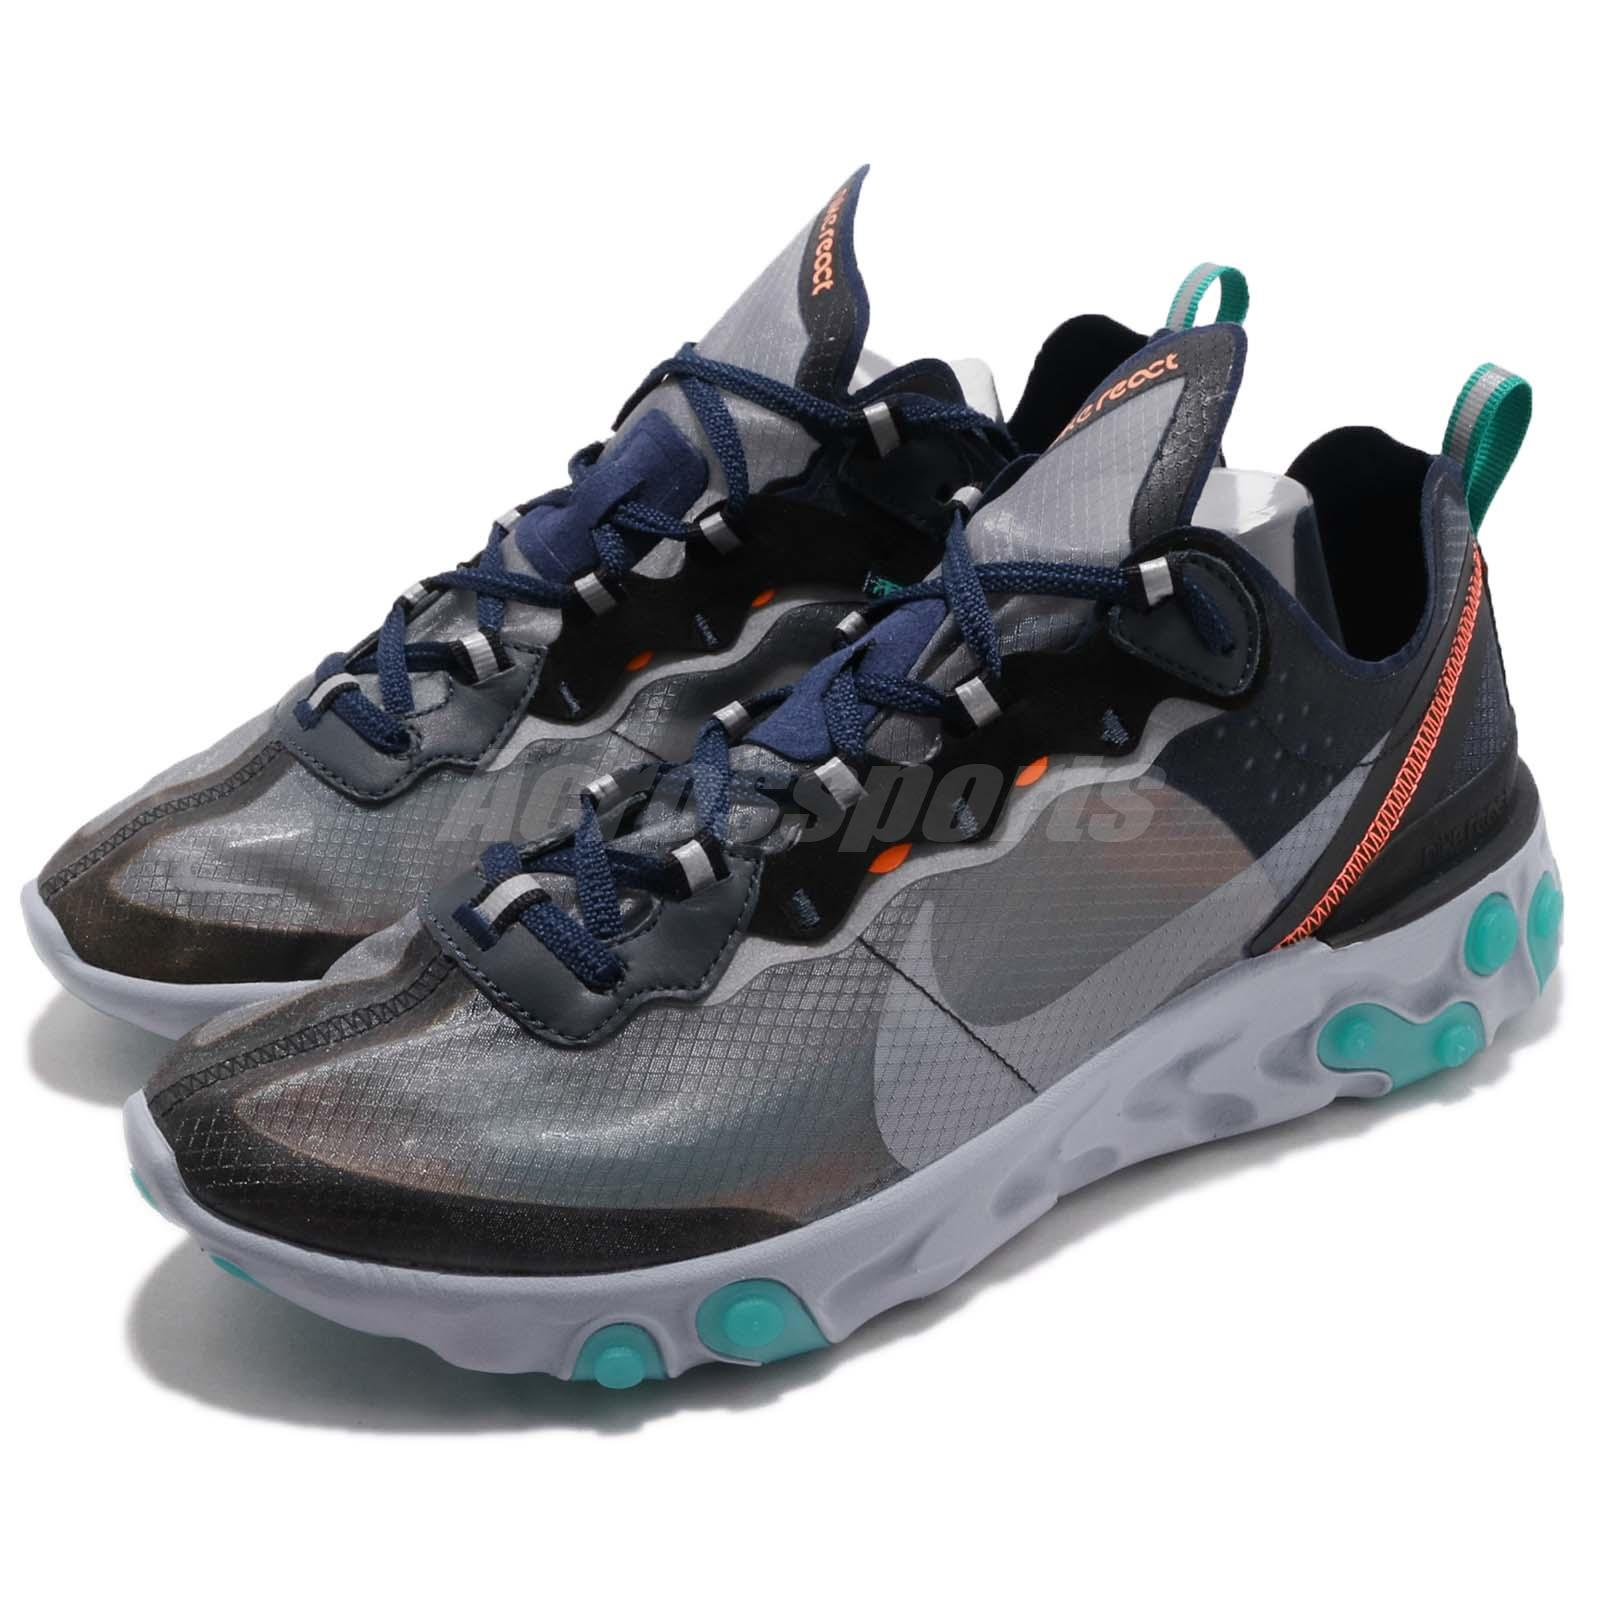 b9e151a85c31 Details about Nike React Element 87 Neptune Green Black Navy Mens Running  Shoes AQ1090-005